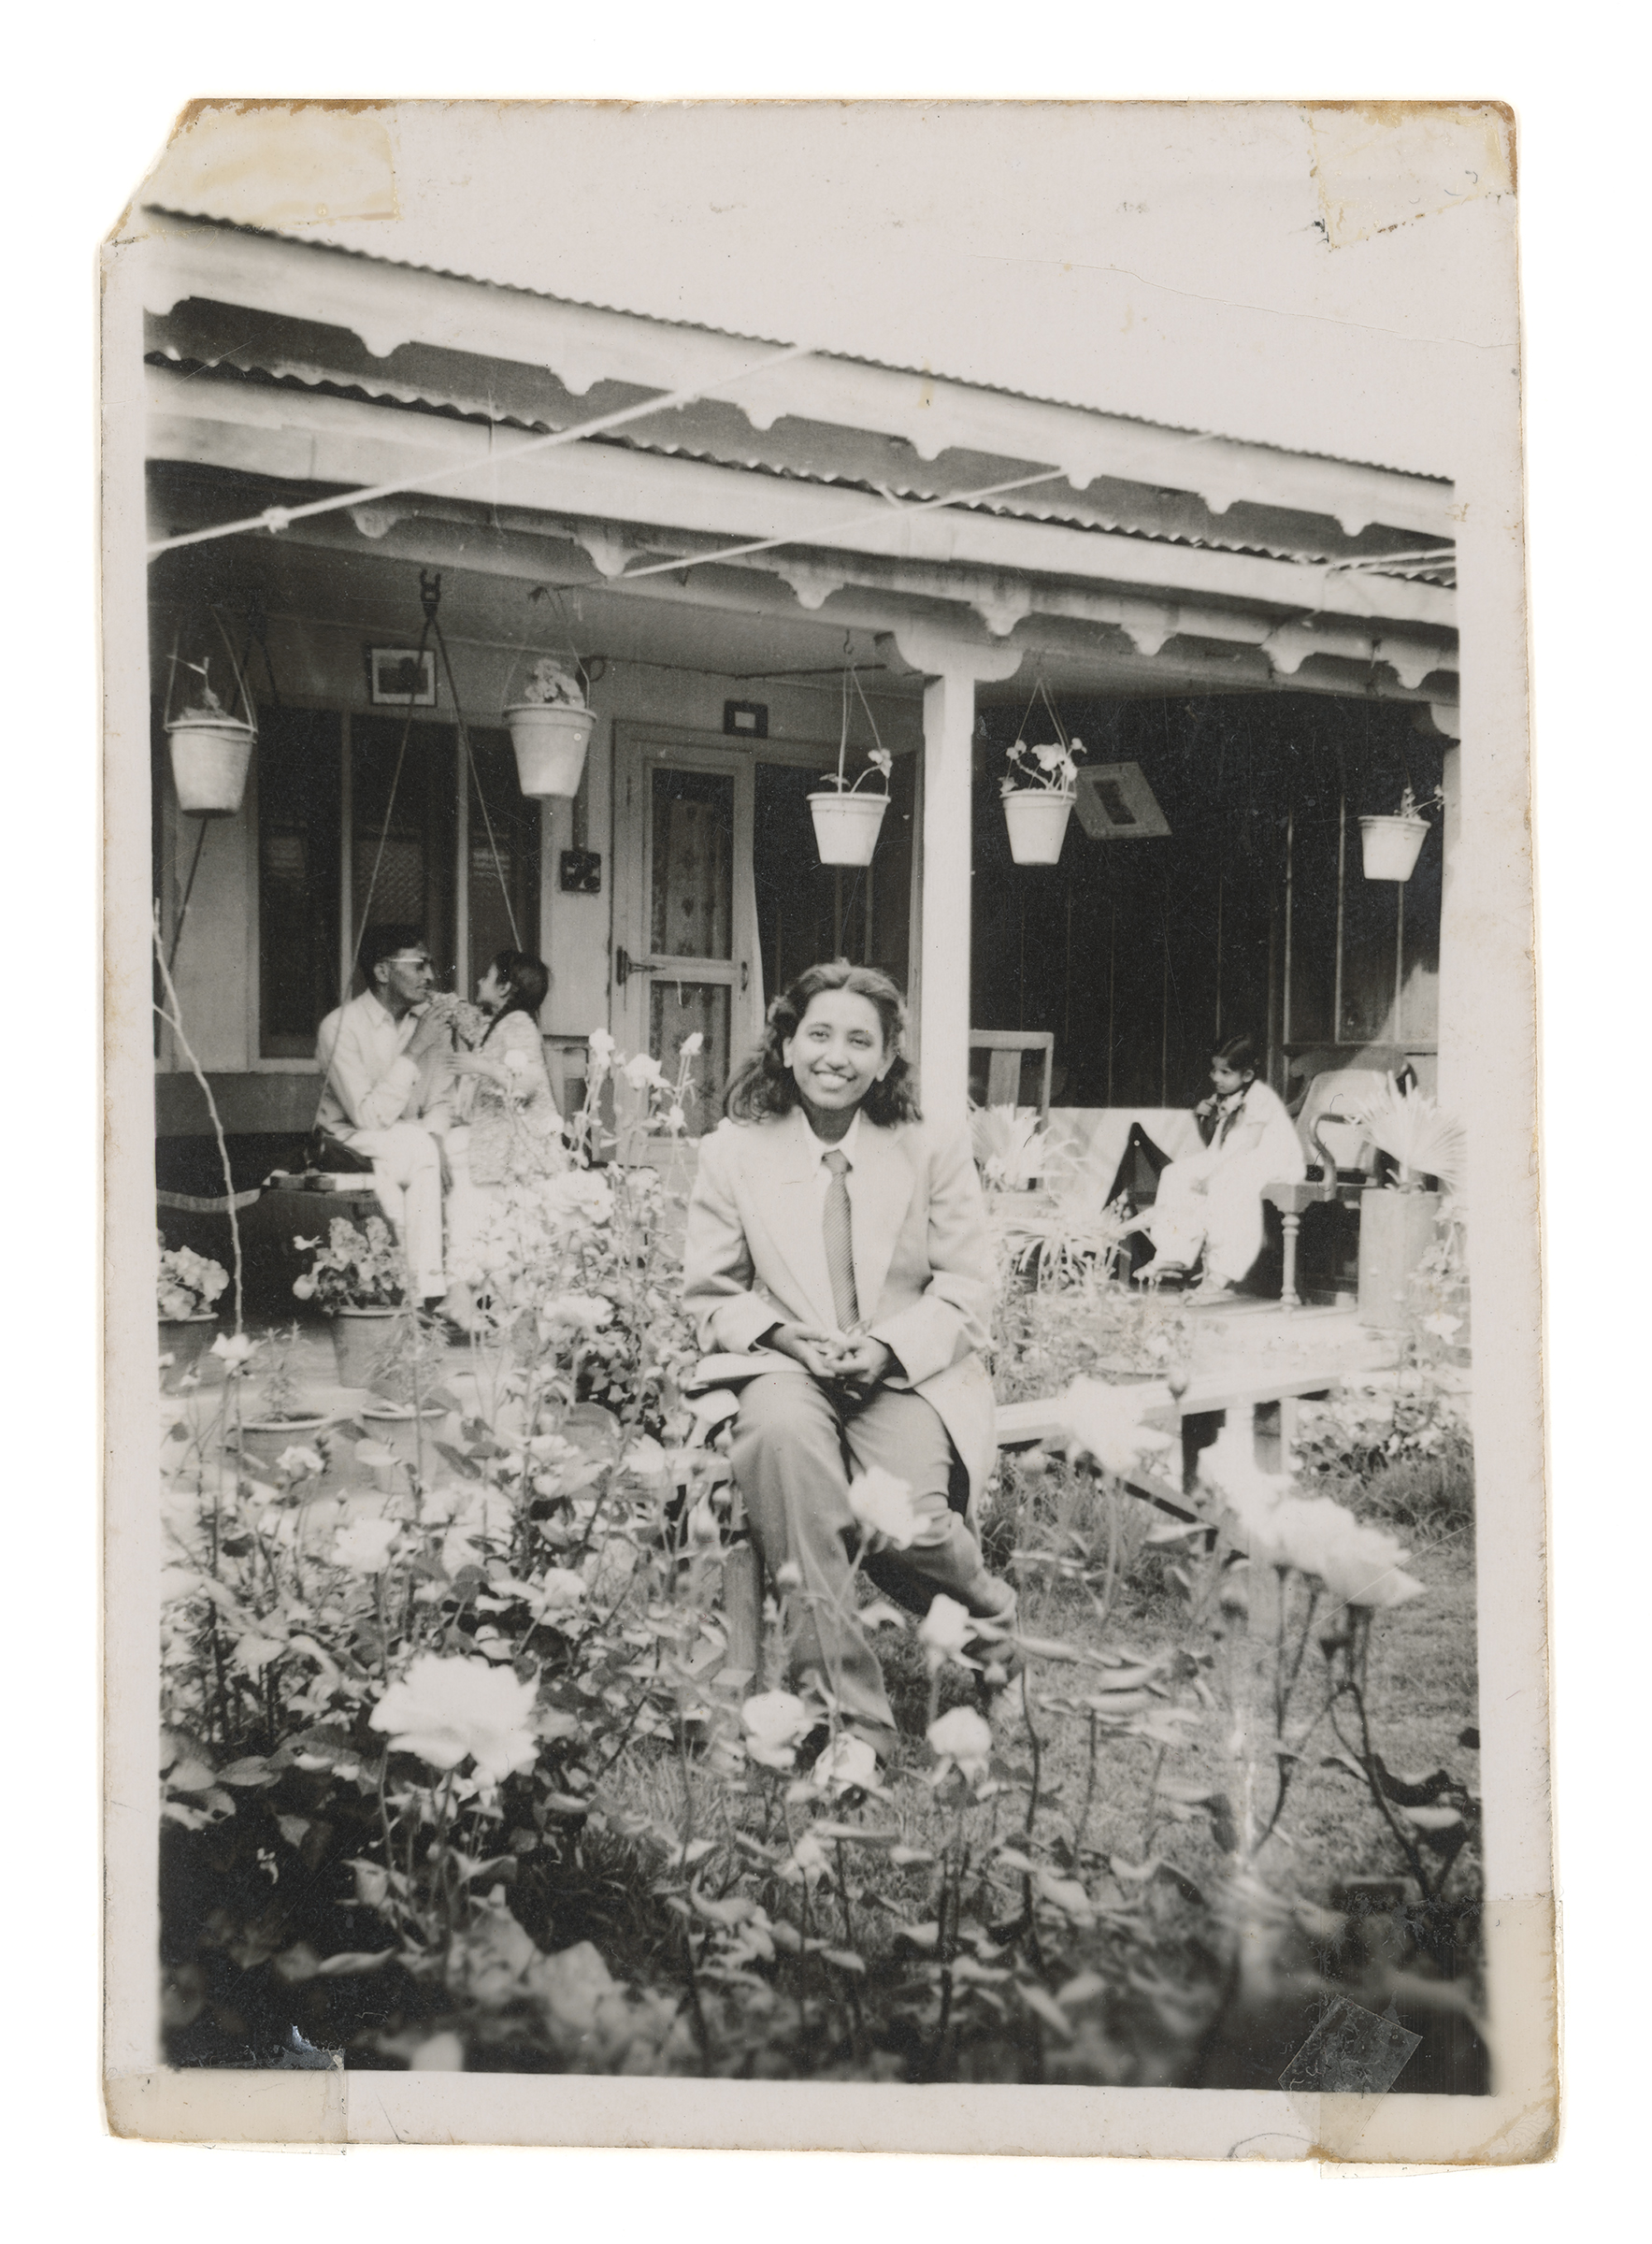 Zinnia Naqvi, Nani in Garden, 1948, 2017. Inkjet print, 48x35 in. Courtesy of the artist.